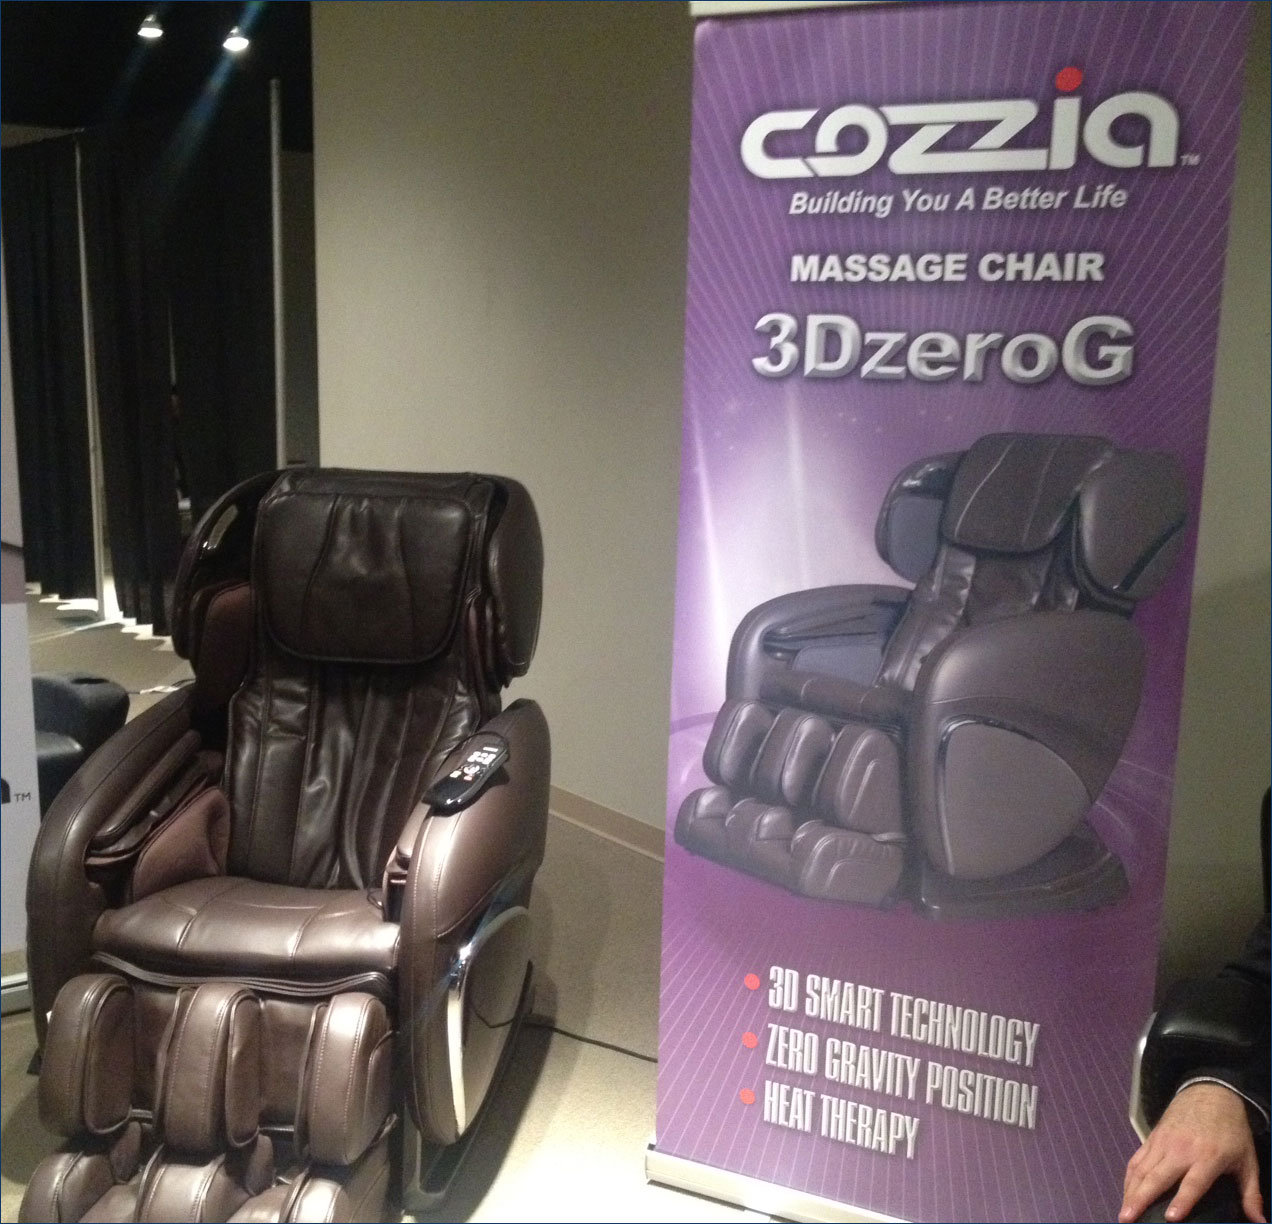 Marvelous Cozzia 3Dzerog Massage Chair Massage Chair Reviews Gmtry Best Dining Table And Chair Ideas Images Gmtryco